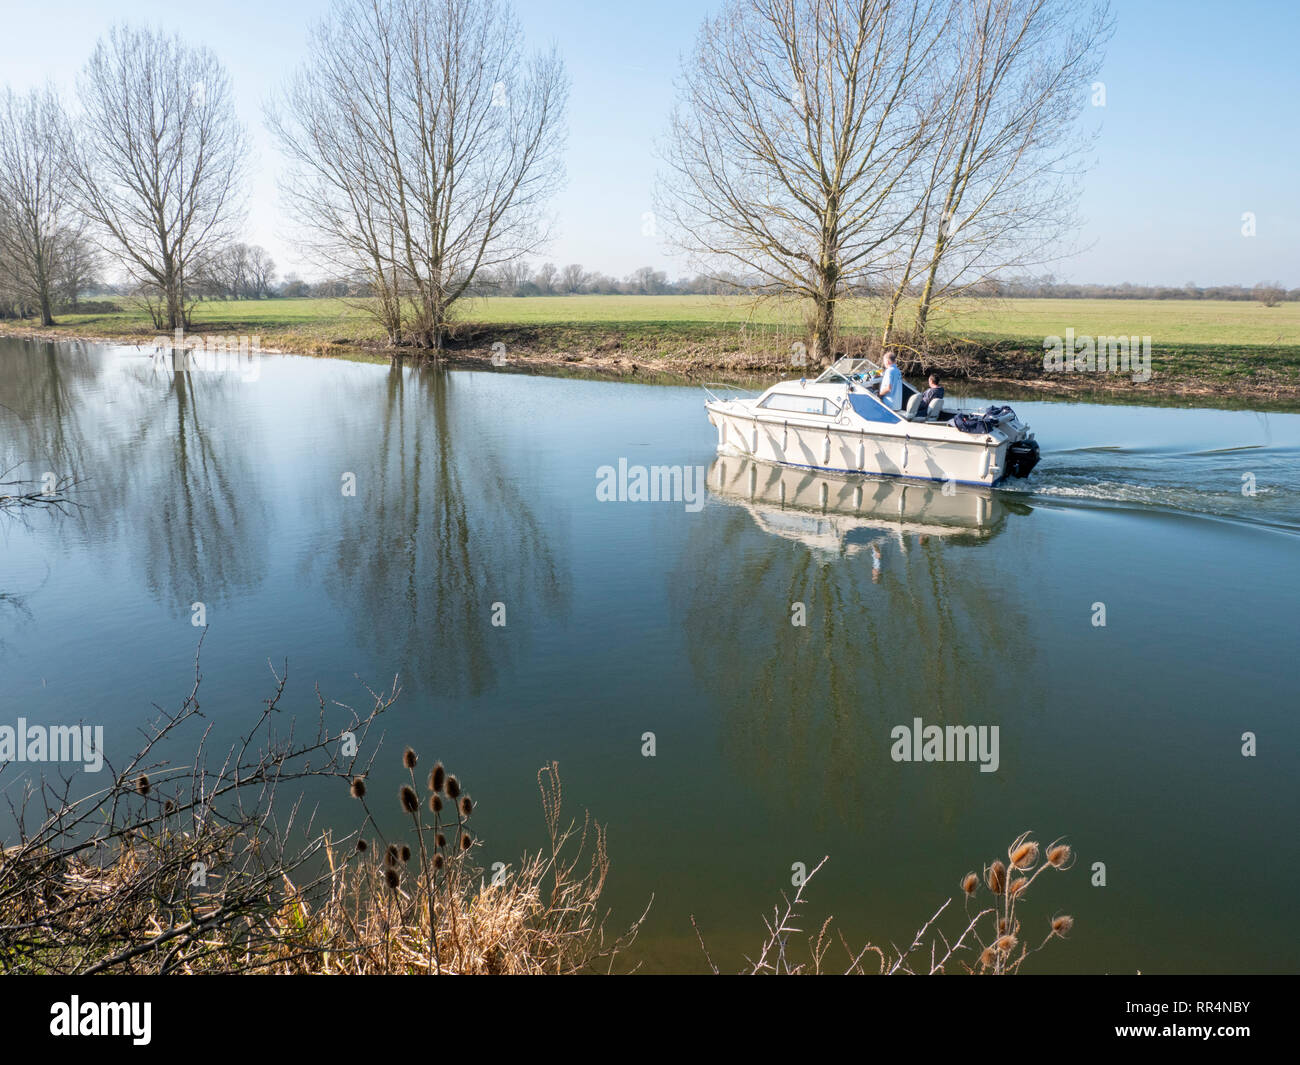 Over, Cambridgeshire, UK. 24th Feb 2019. Boaters enjoy messing around on the River Great Ouse in spring like conditions under a cloudless blue sky.  Temperatures rose to around 15 degrees centigrade in the unusually mild weather for the time of year. Credit: Julian Eales/Alamy Live News - Stock Image